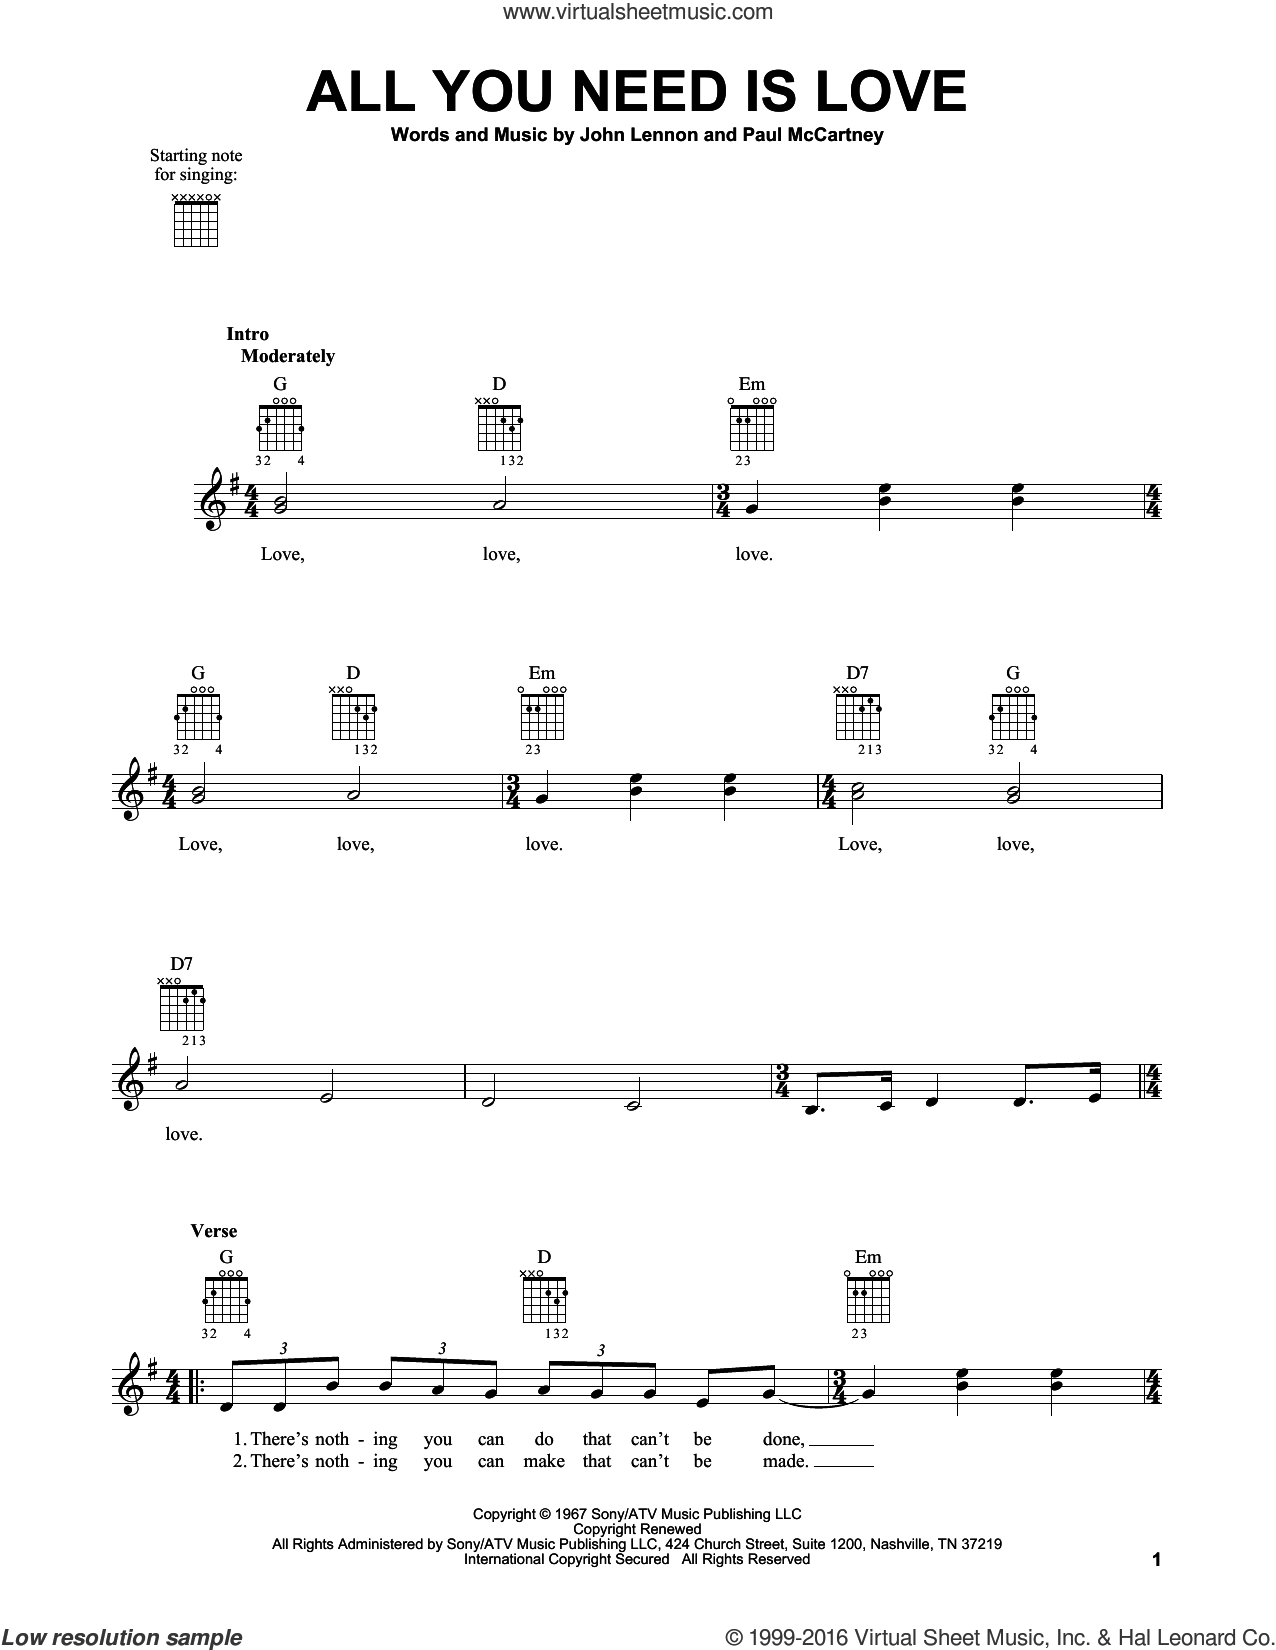 All You Need Is Love sheet music for guitar solo (chords) by The Beatles, John Lennon and Paul McCartney, easy guitar (chords). Score Image Preview.